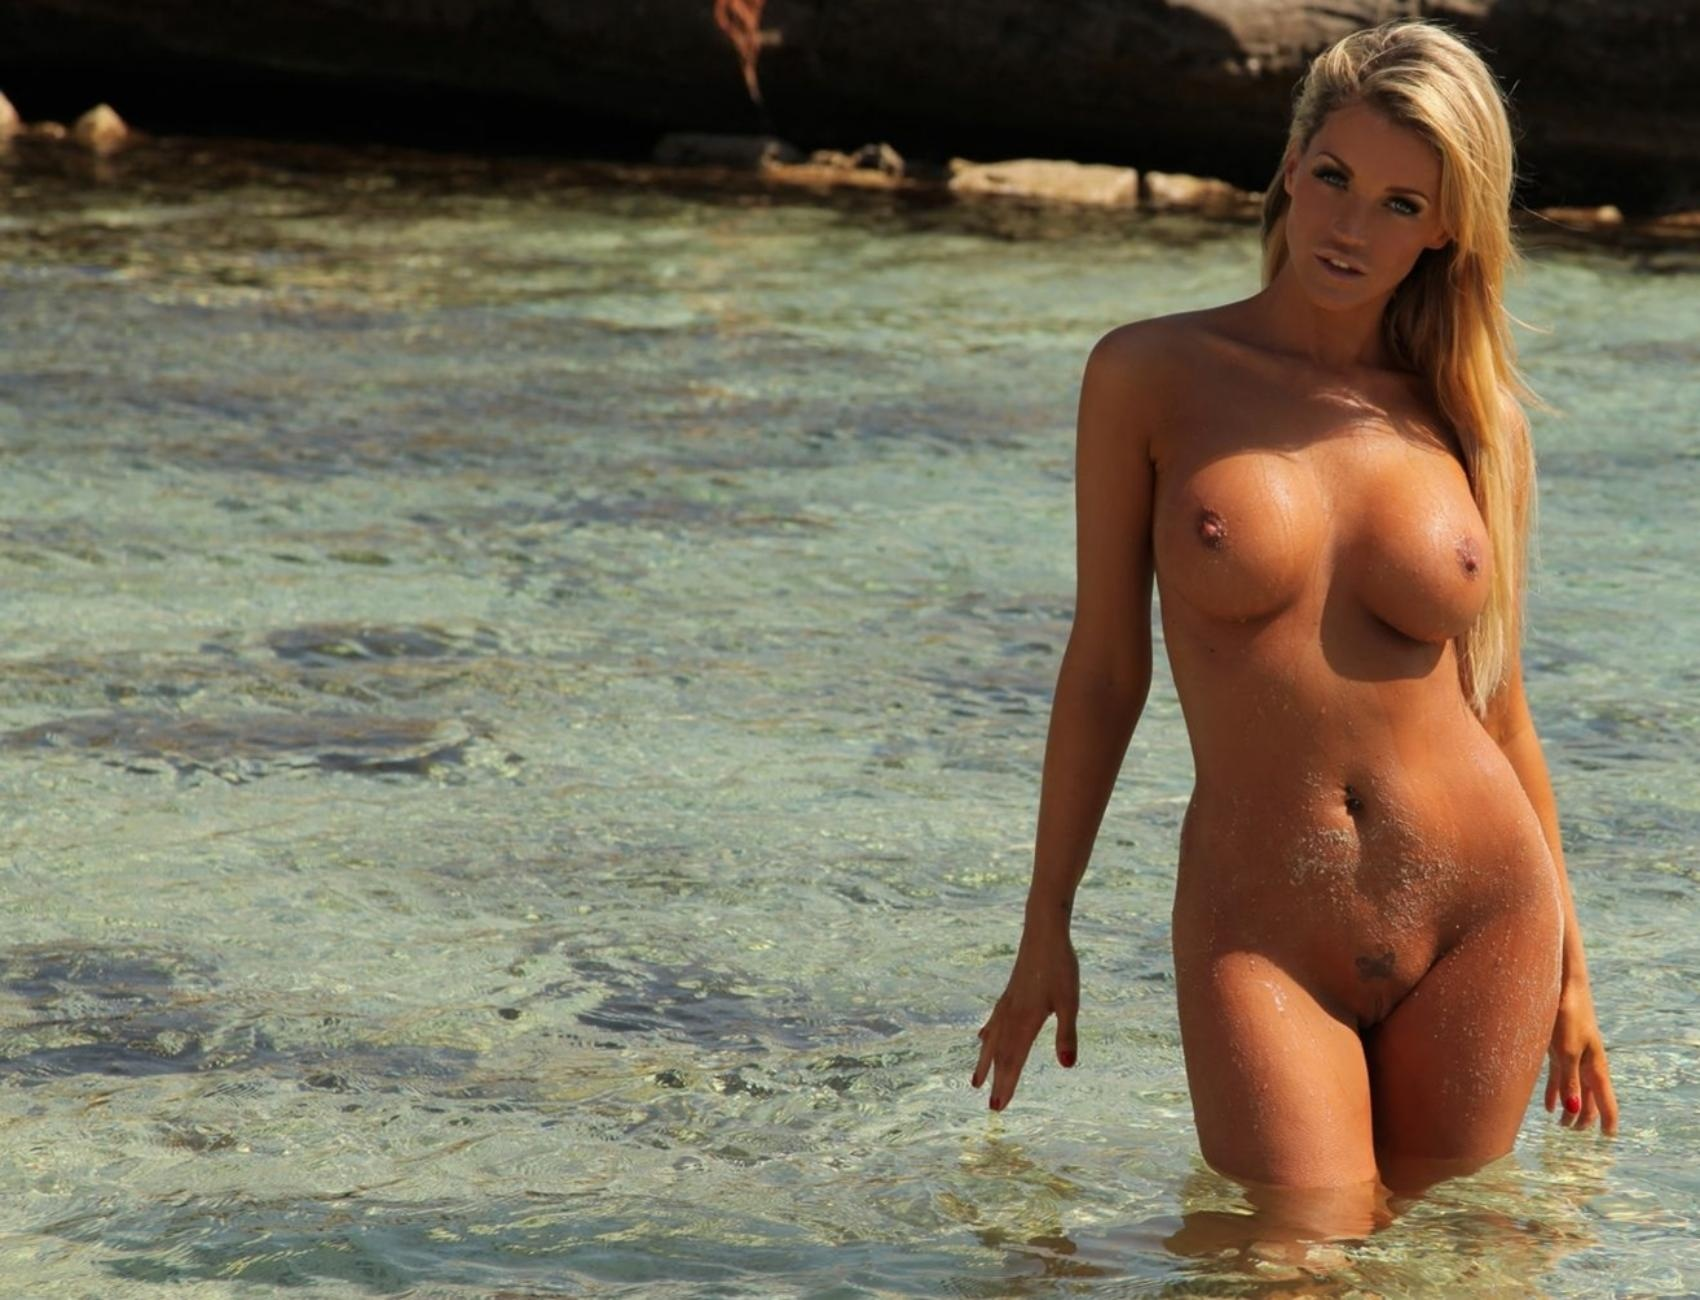 Wallpaper Holly Henderson, Nude, Naked, Beach, Big Tits -4259